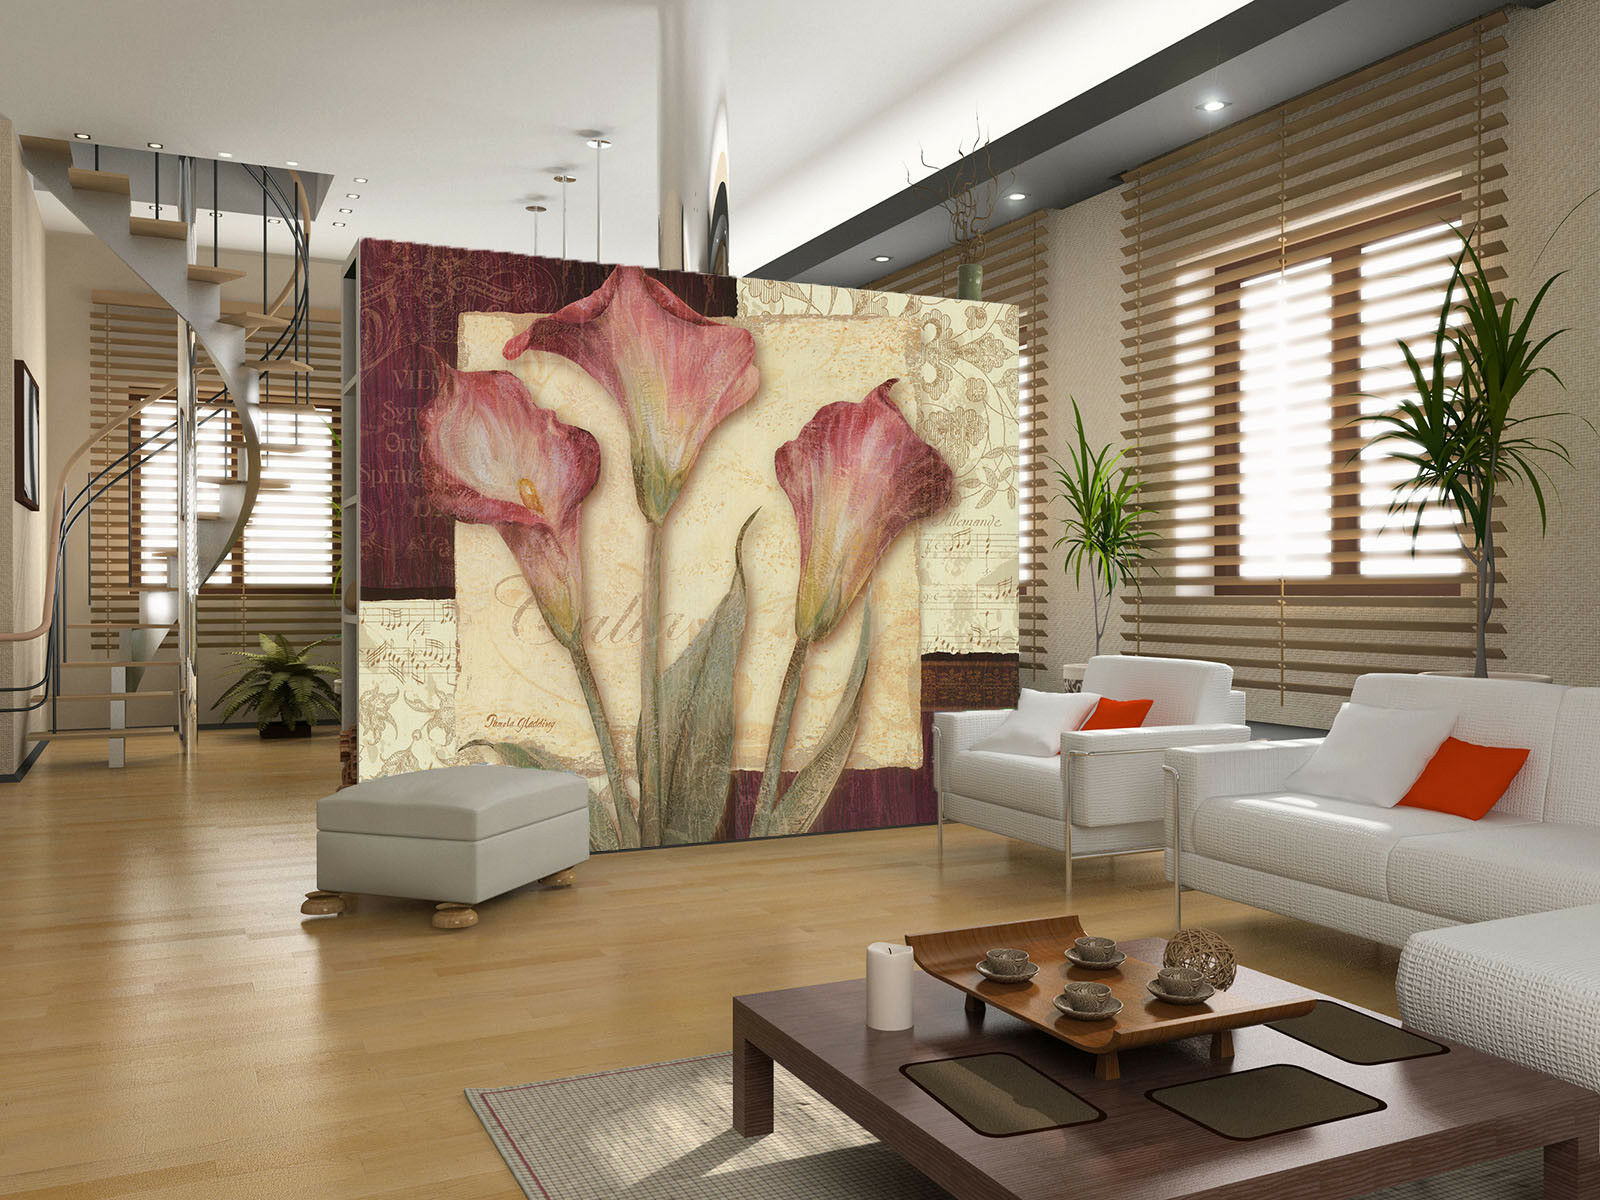 3D Calla Flower Retro 4 Wall Paper Wall Print Print Print Decal Wall Deco Indoor Mural Carly 1aa553